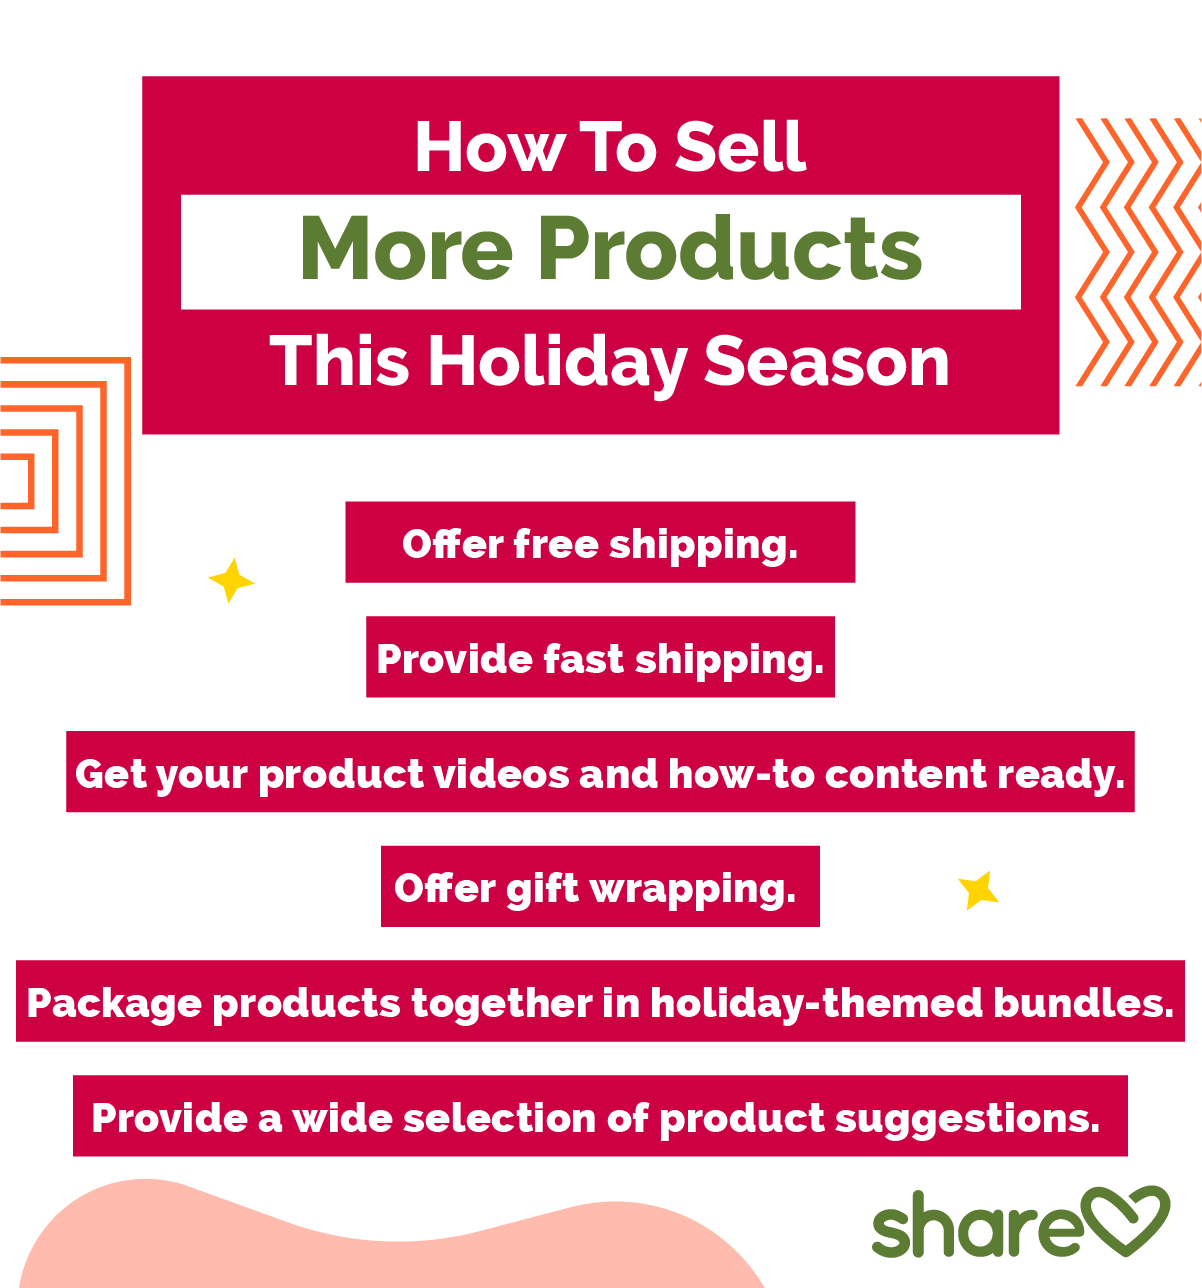 How To Sell More Products (Bonus Content)